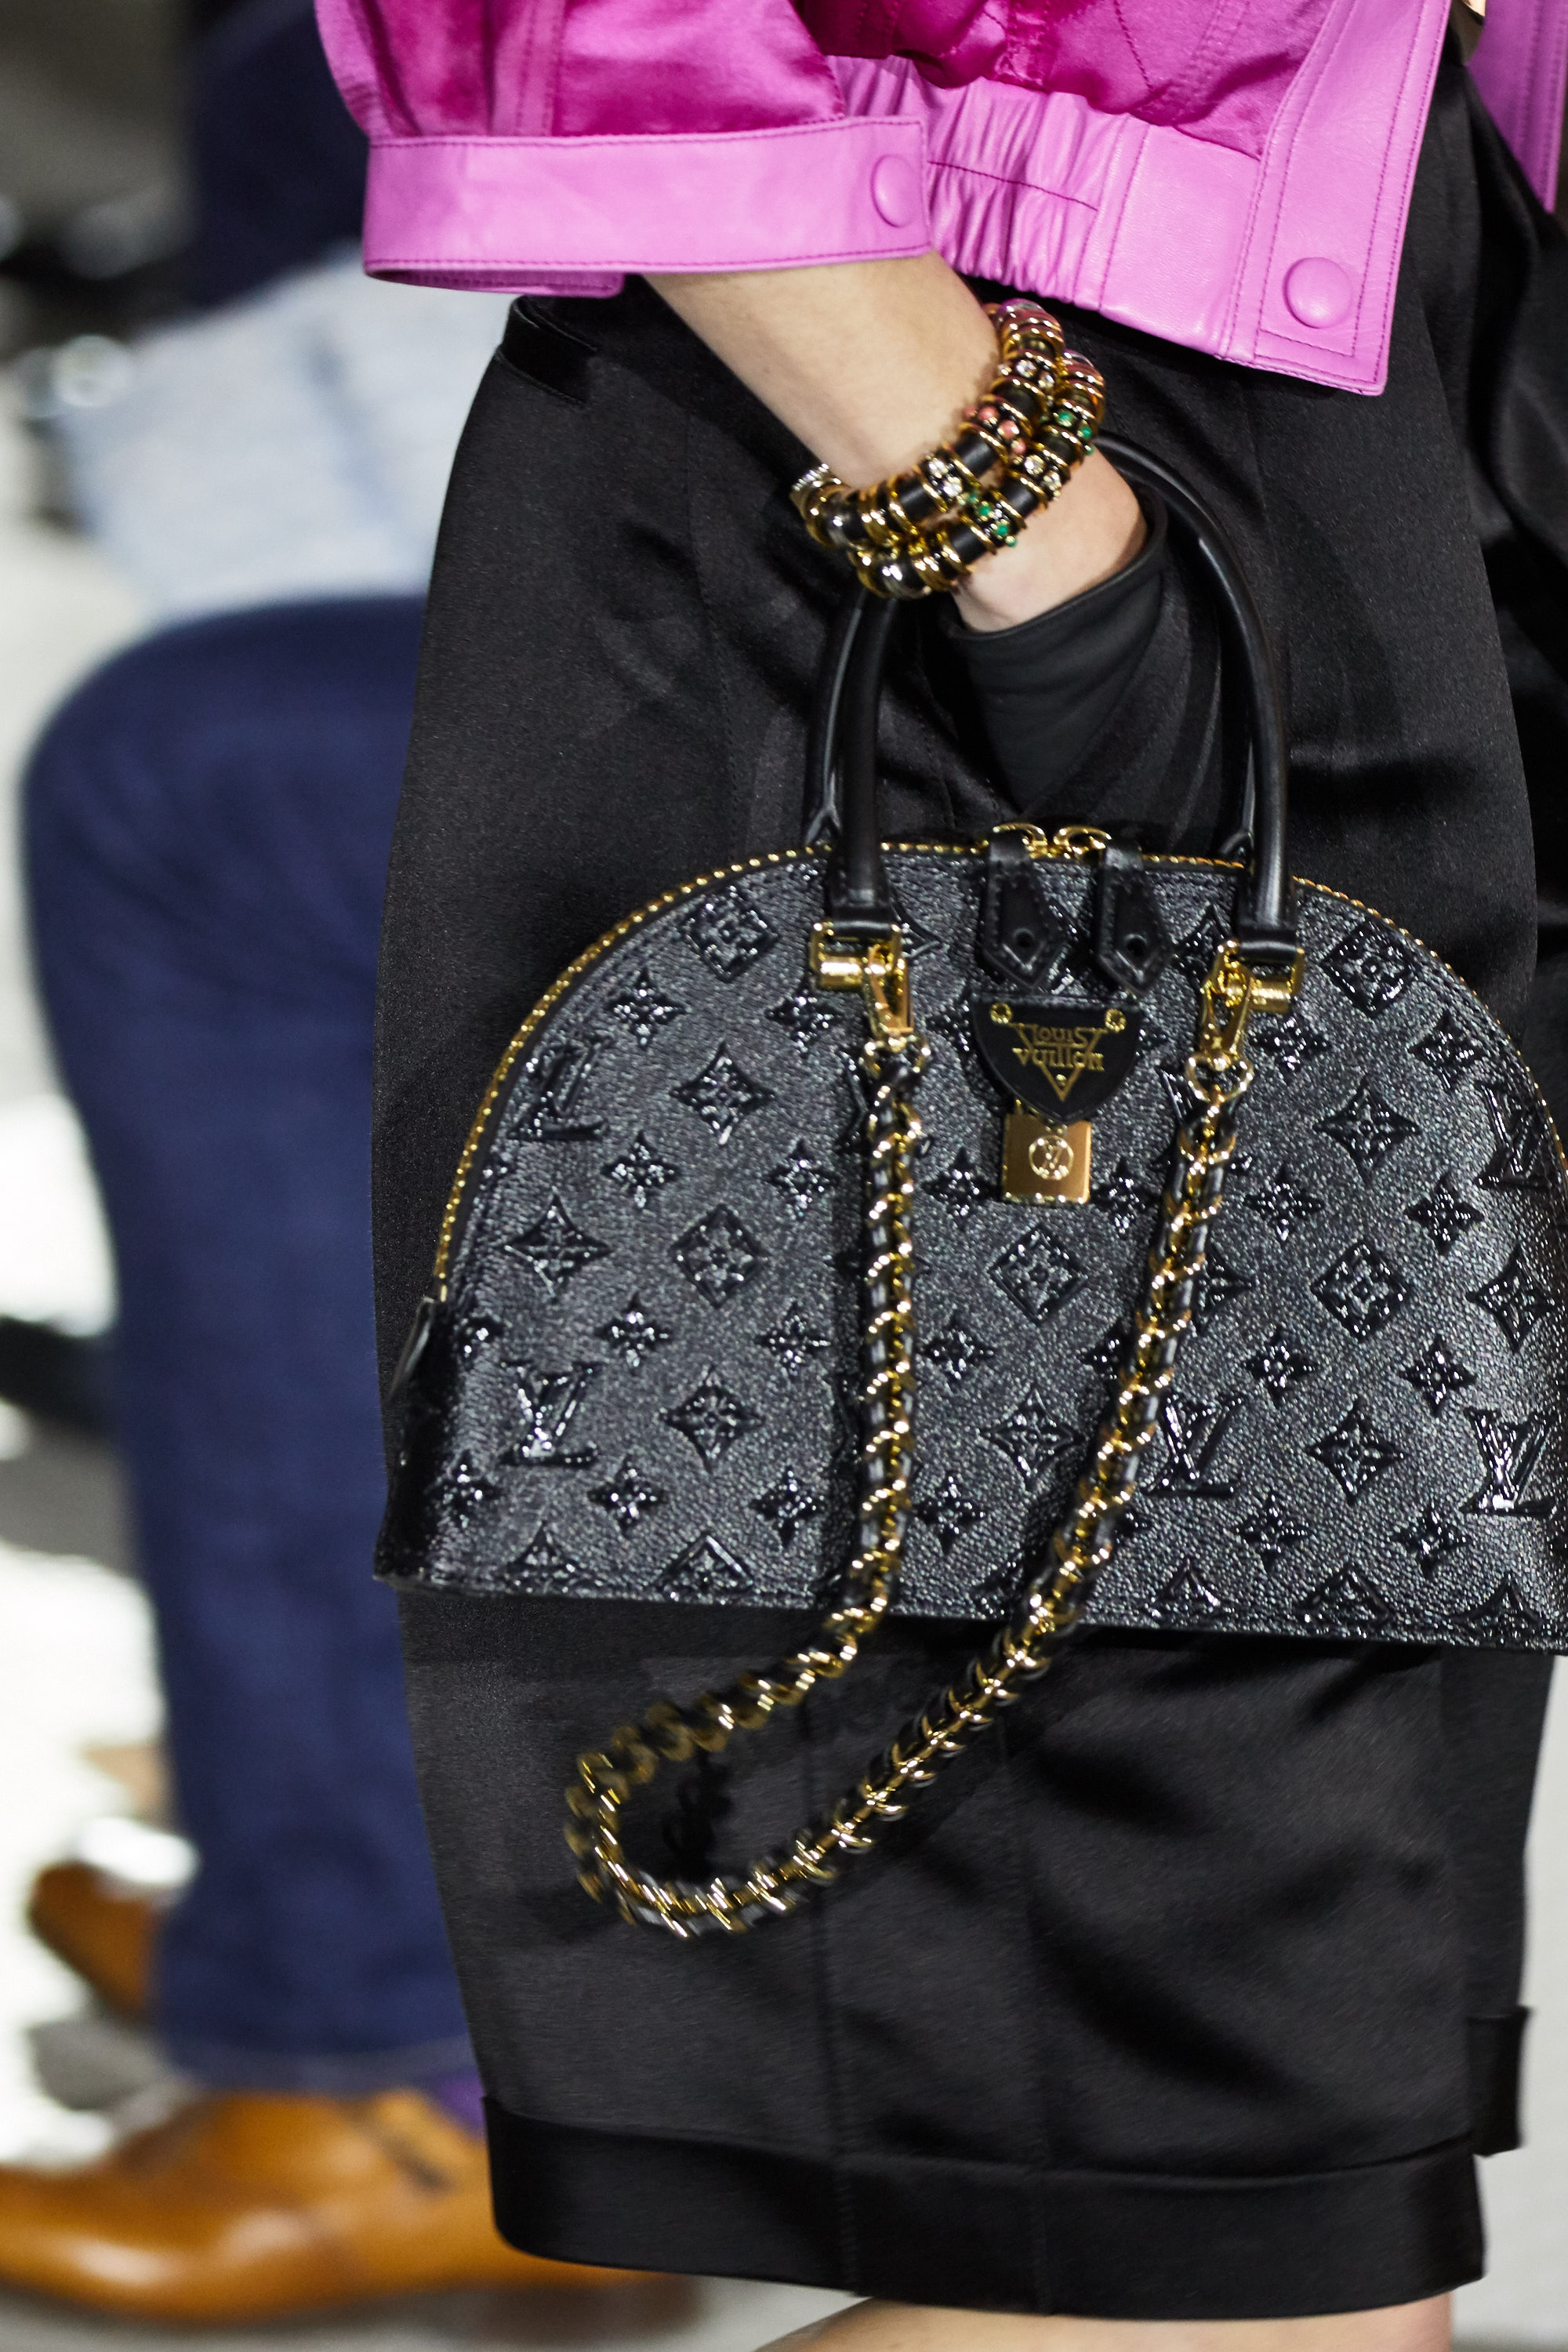 NEW YORK, NEW YORK - MAY 08: A model (bag detail) walks the runway wearing Louis Vuitton Cruise 2020 at the TWA Terminal Hotel at JFK on May 08, 2019 in New York City. (Photo by Thomas Concordia/Getty Images)